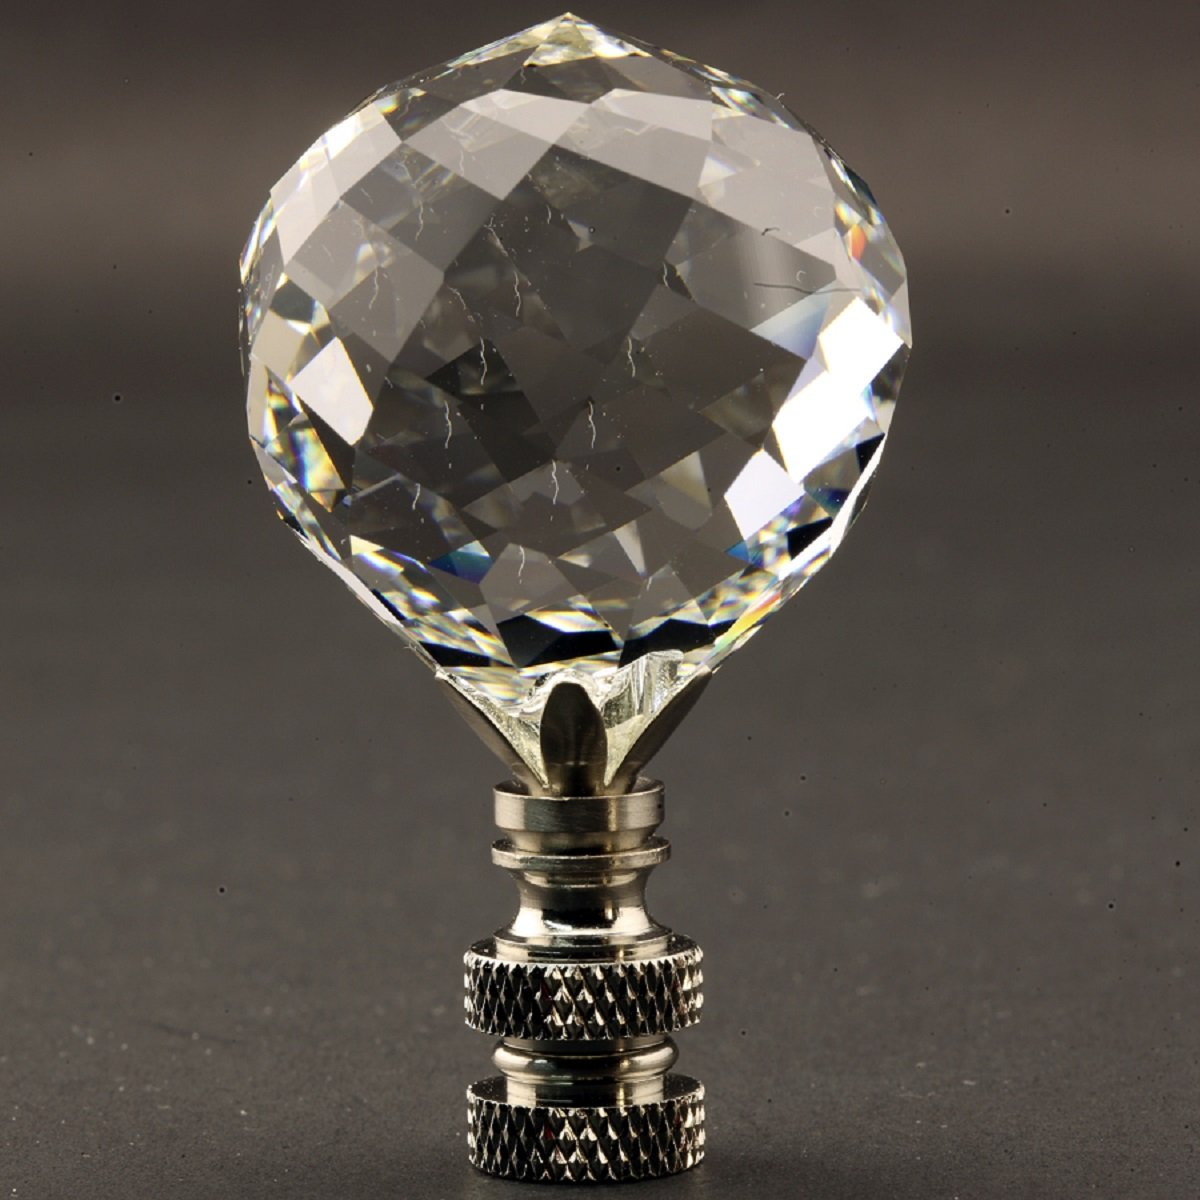 Swarovski Crystal Faceted Ball 40MM (1.57'') Lamp Finial with antique brass base finish - 2.5 inch high (Burnished Nickel)